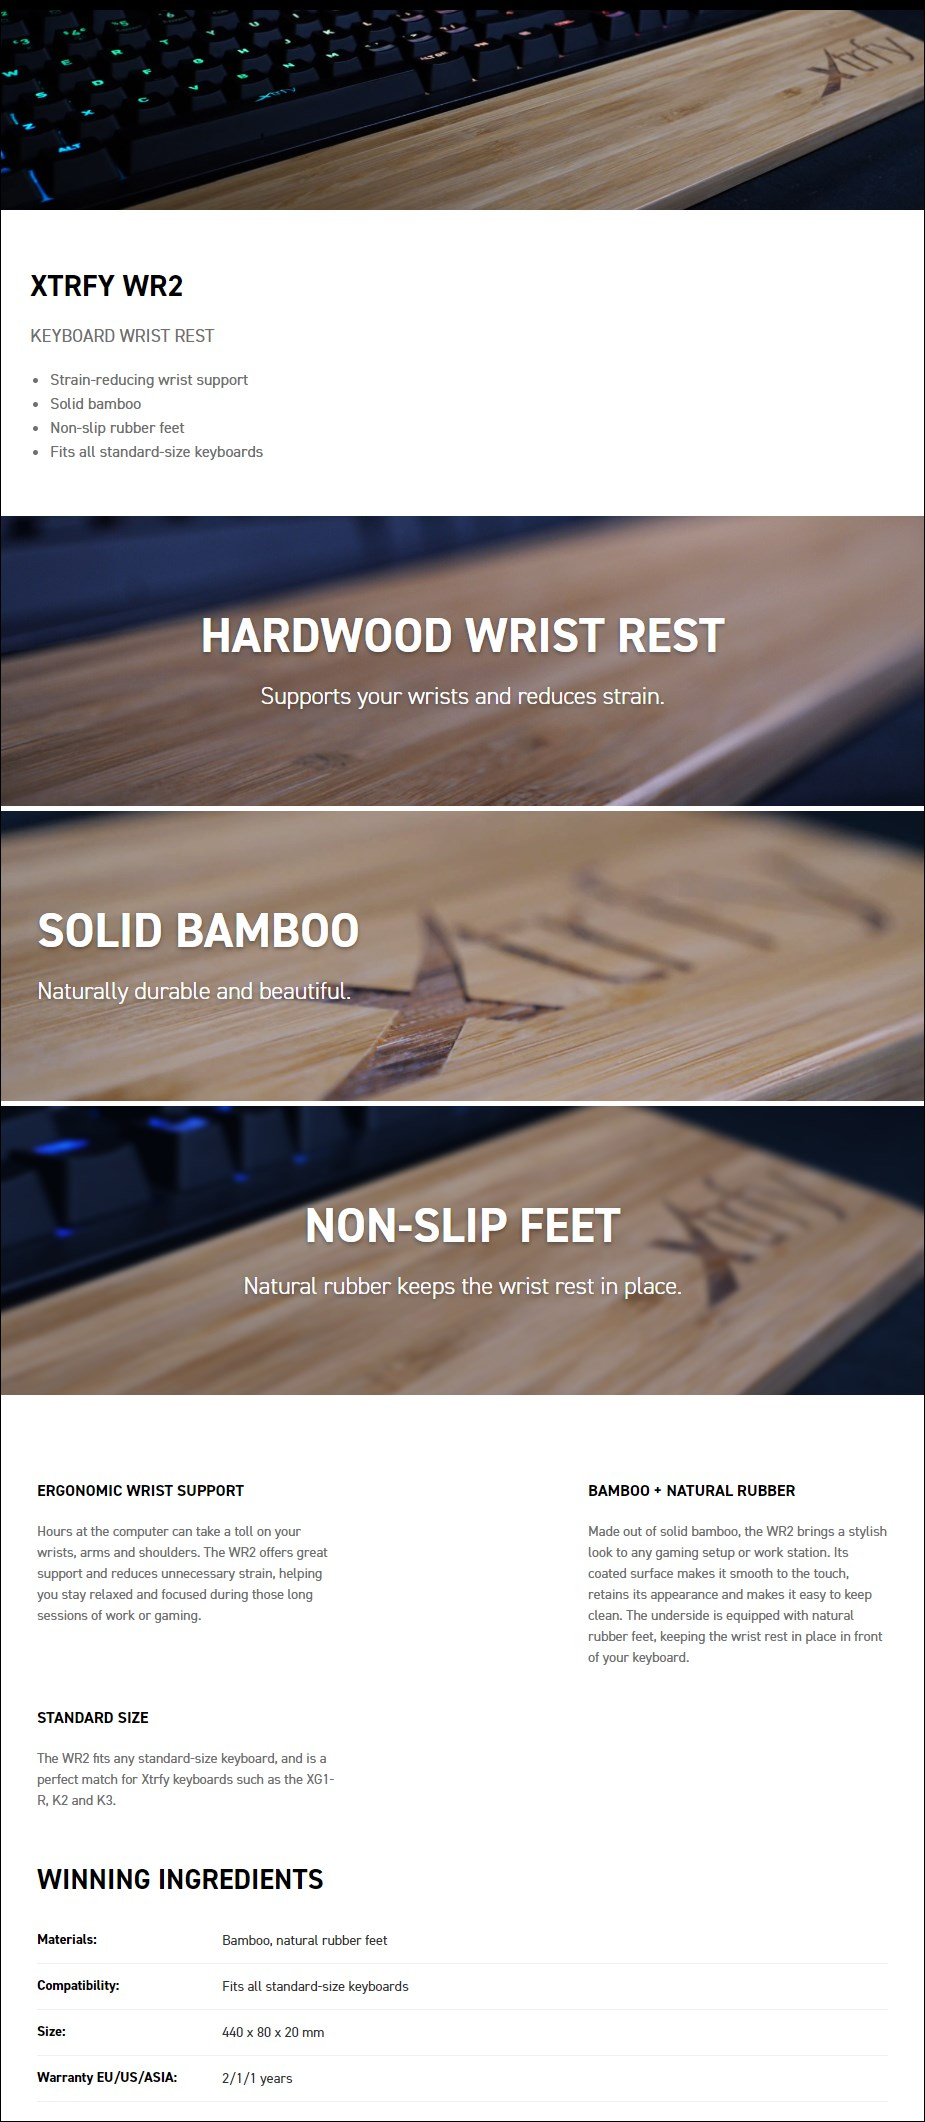 Xtrfy WR2 Bamboo Keyboard Wrist Rest - Overview 1